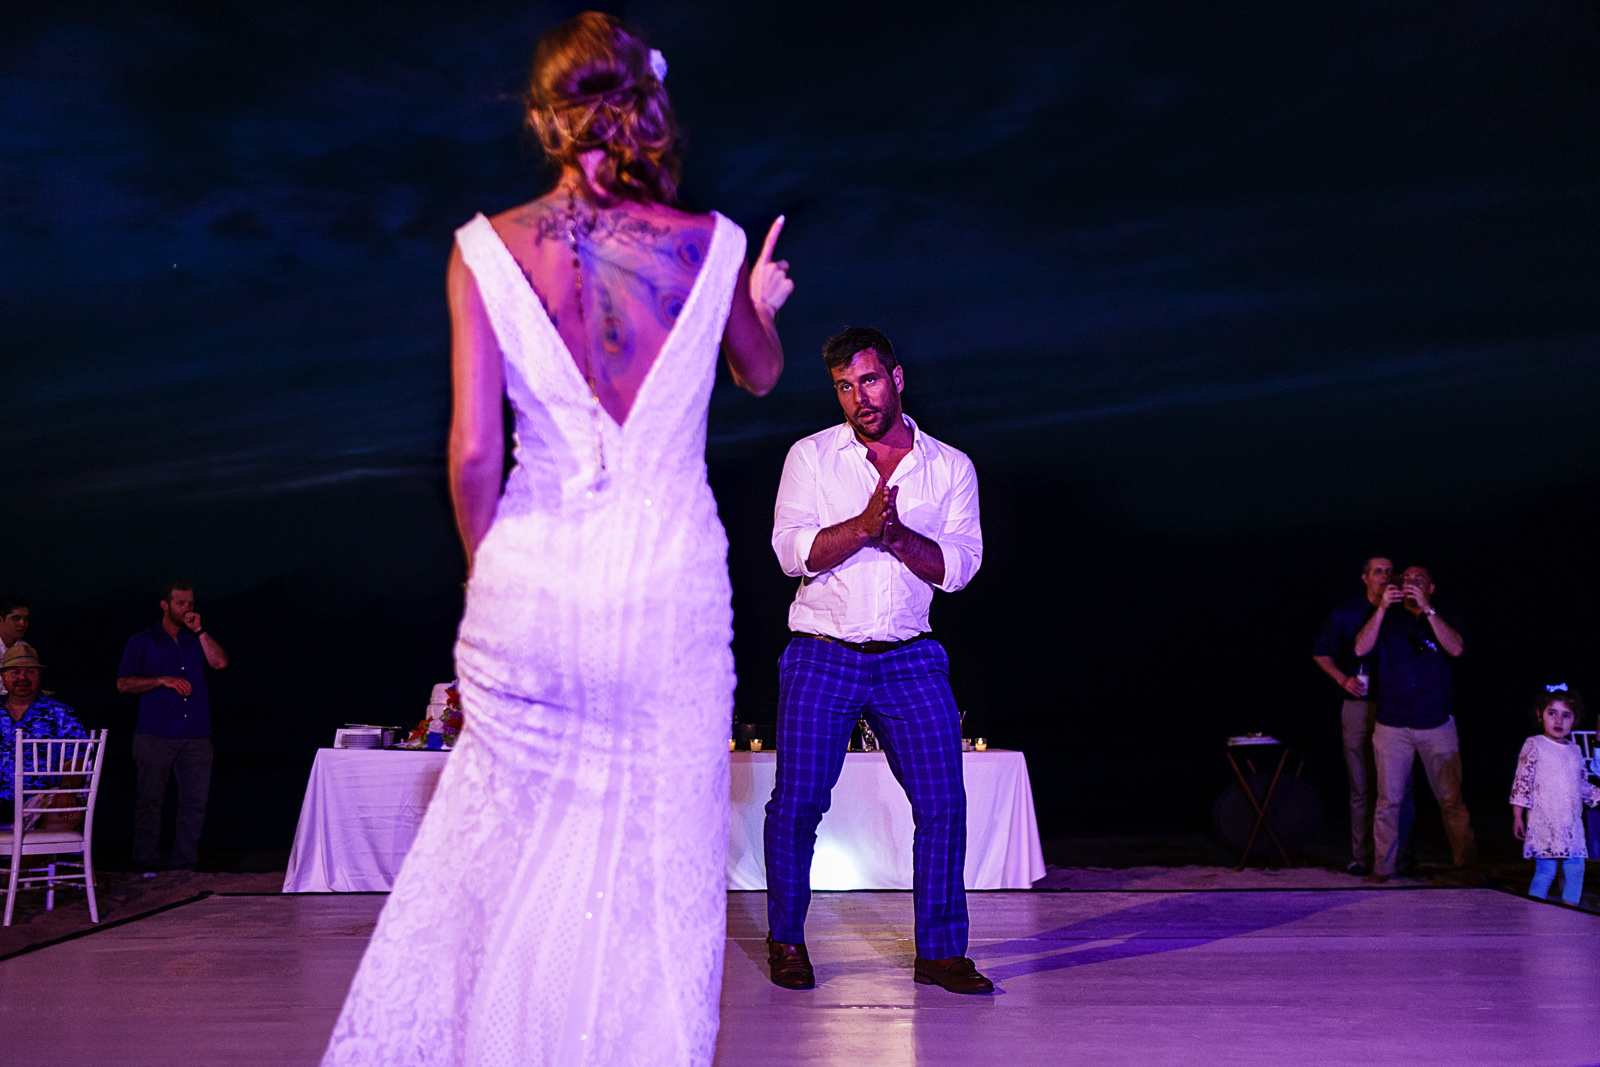 Wedding couple's first dance as husband and wife